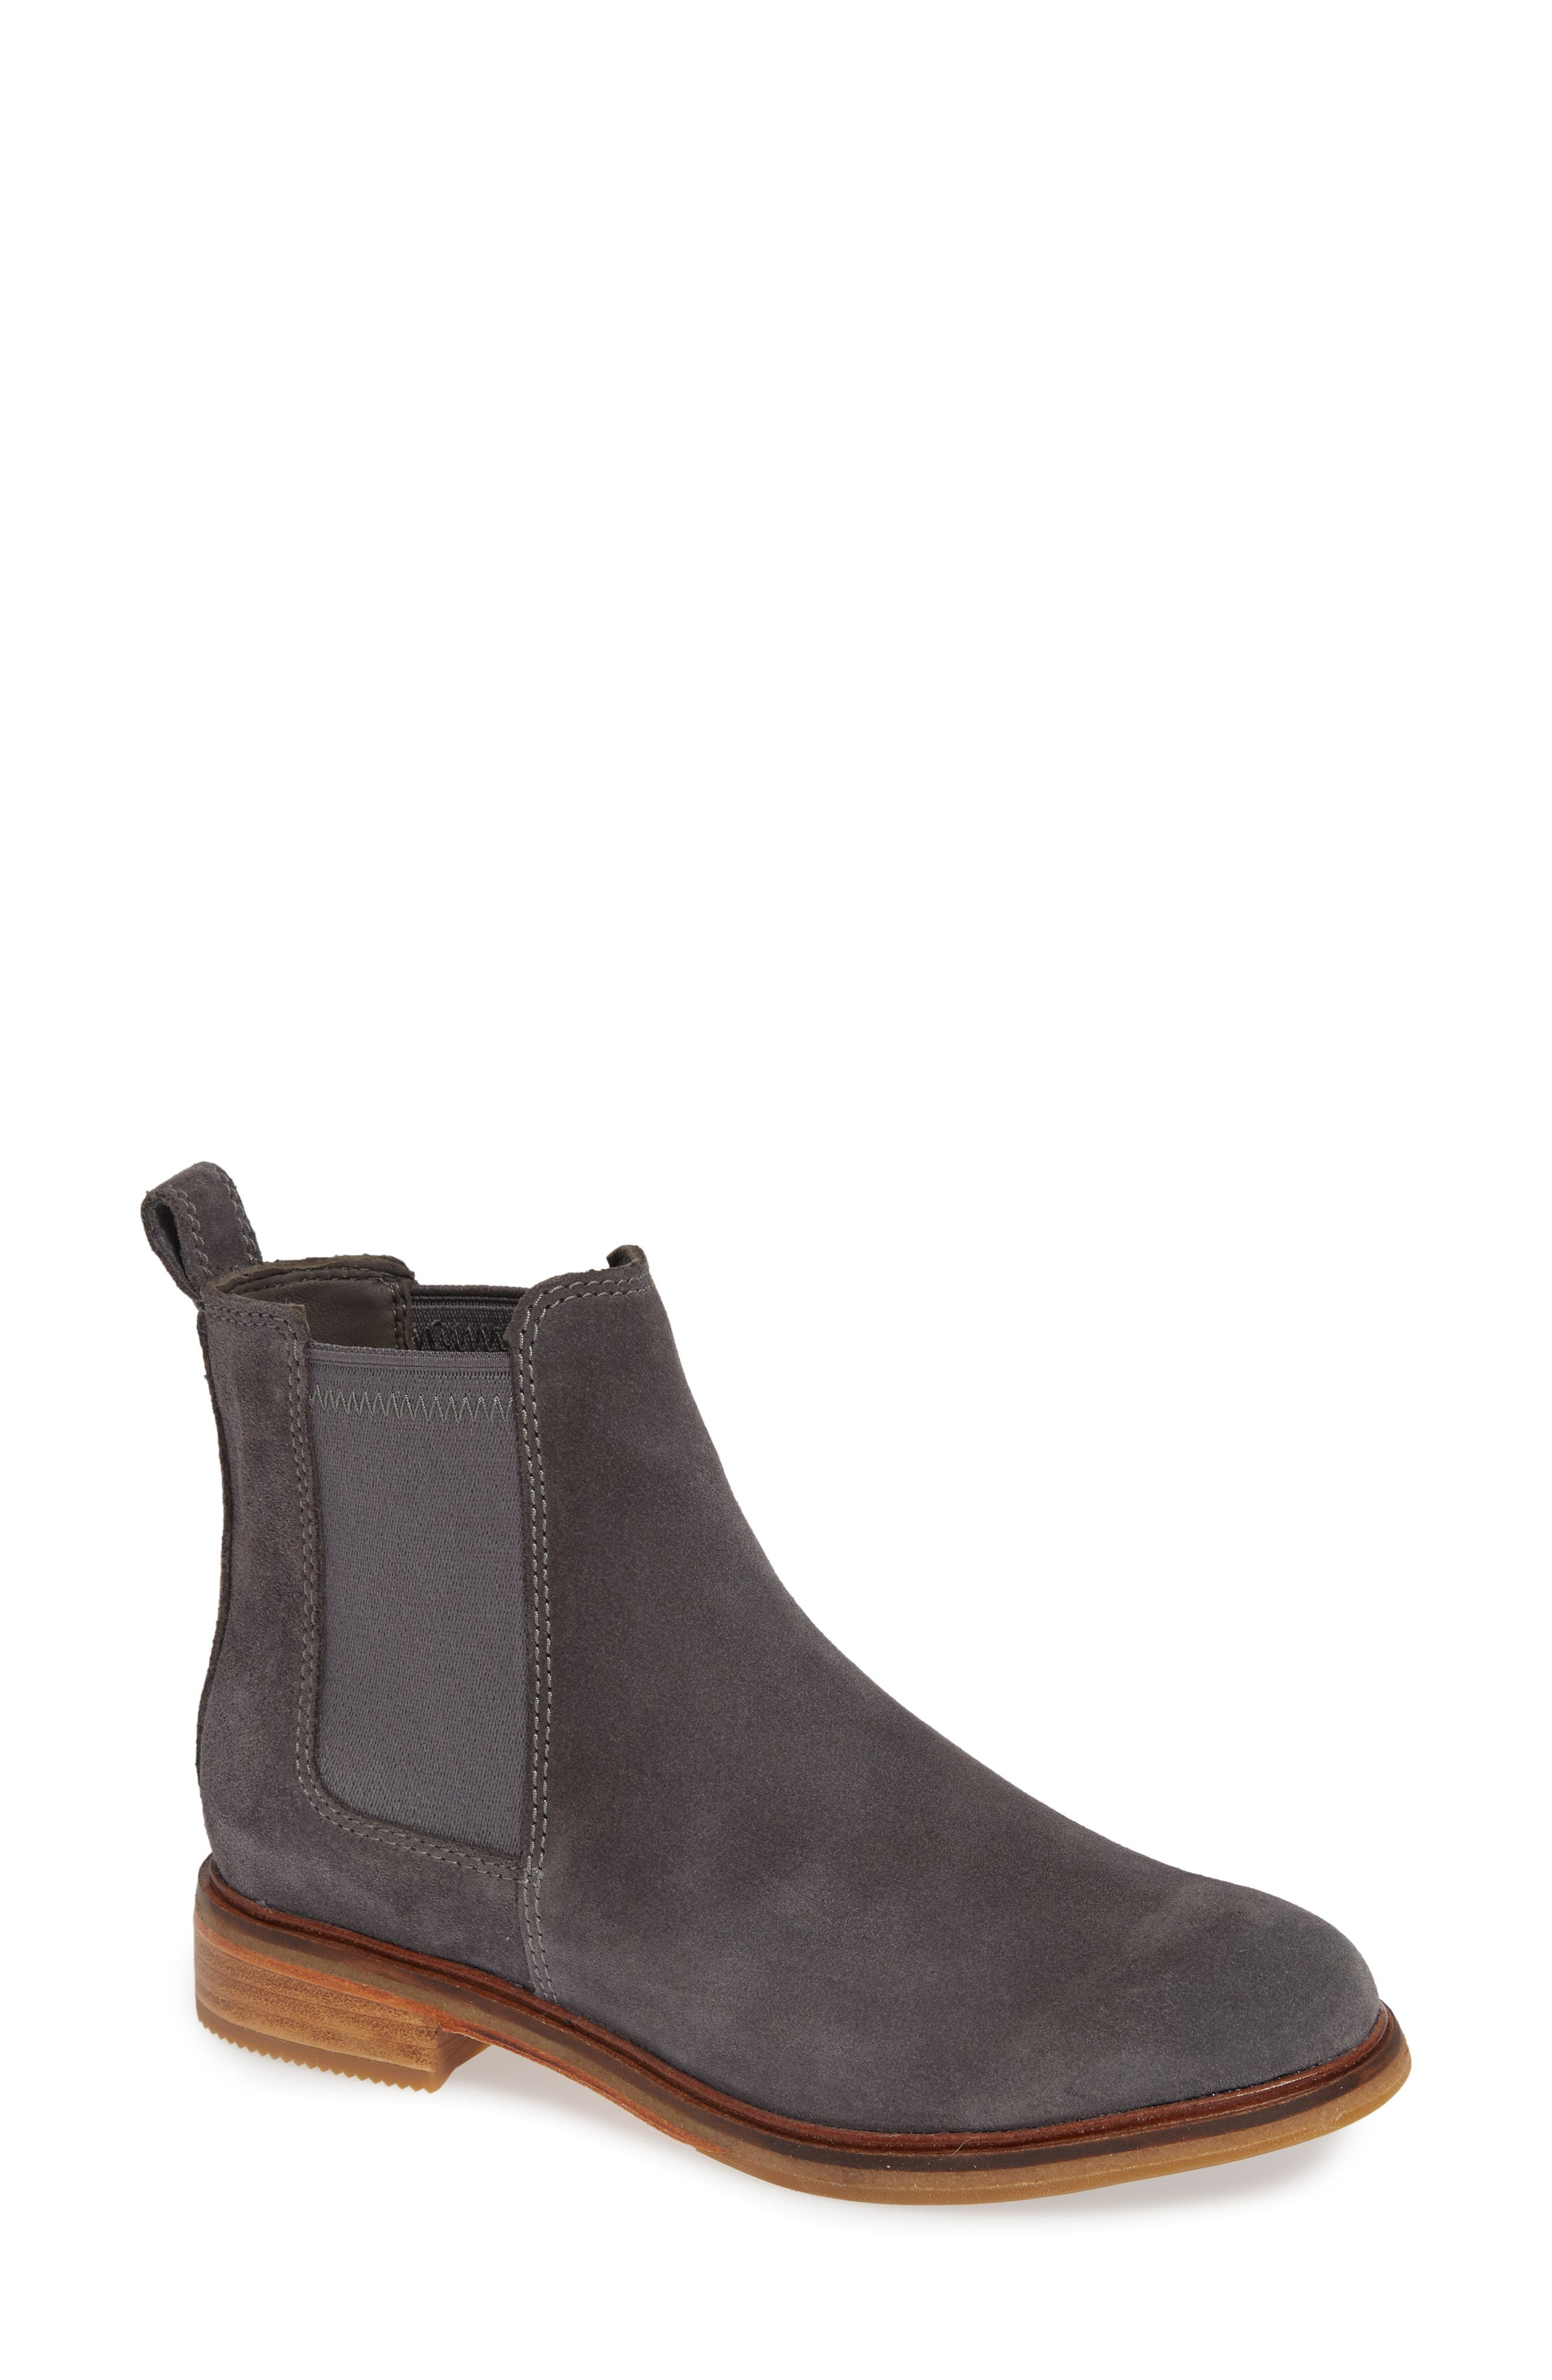 Clarkdale Arlo Boot,                             Main thumbnail 1, color,                             GREY SUEDE